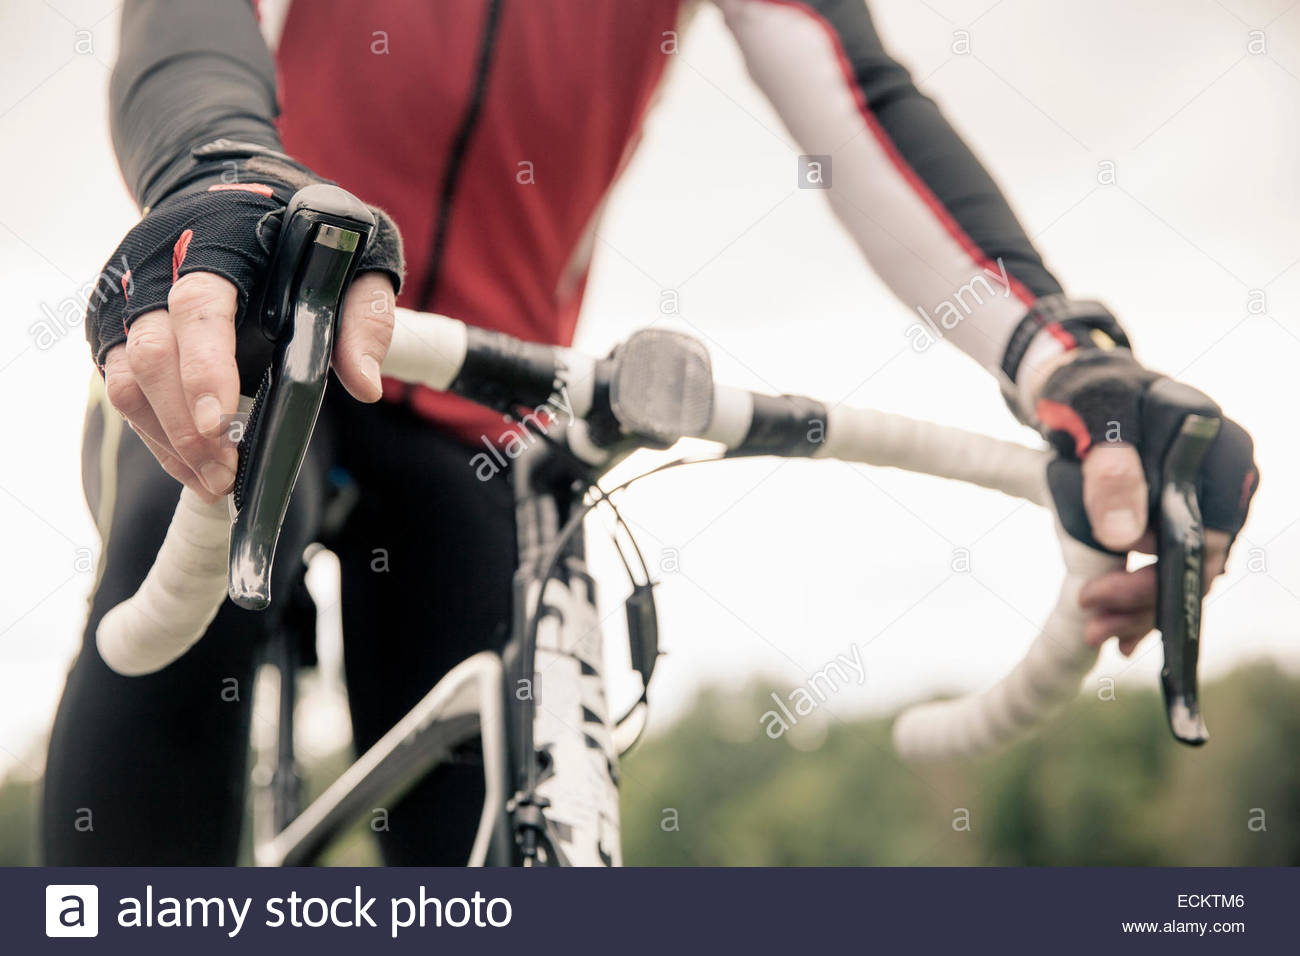 Midsection of cyclist sitting on mountain bike against clear sky - Stock Image